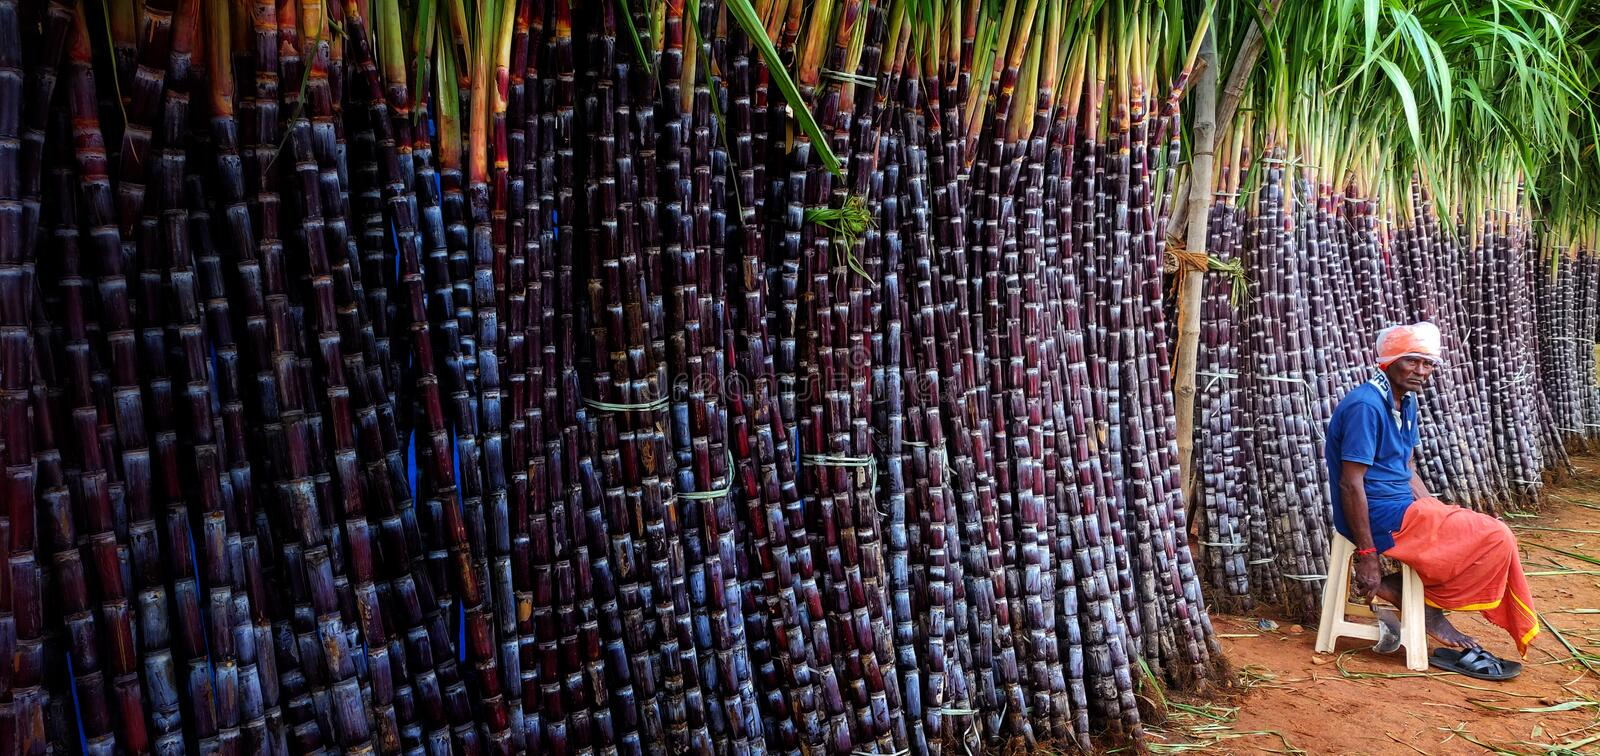 Sugar cane Store royalty free stock photography